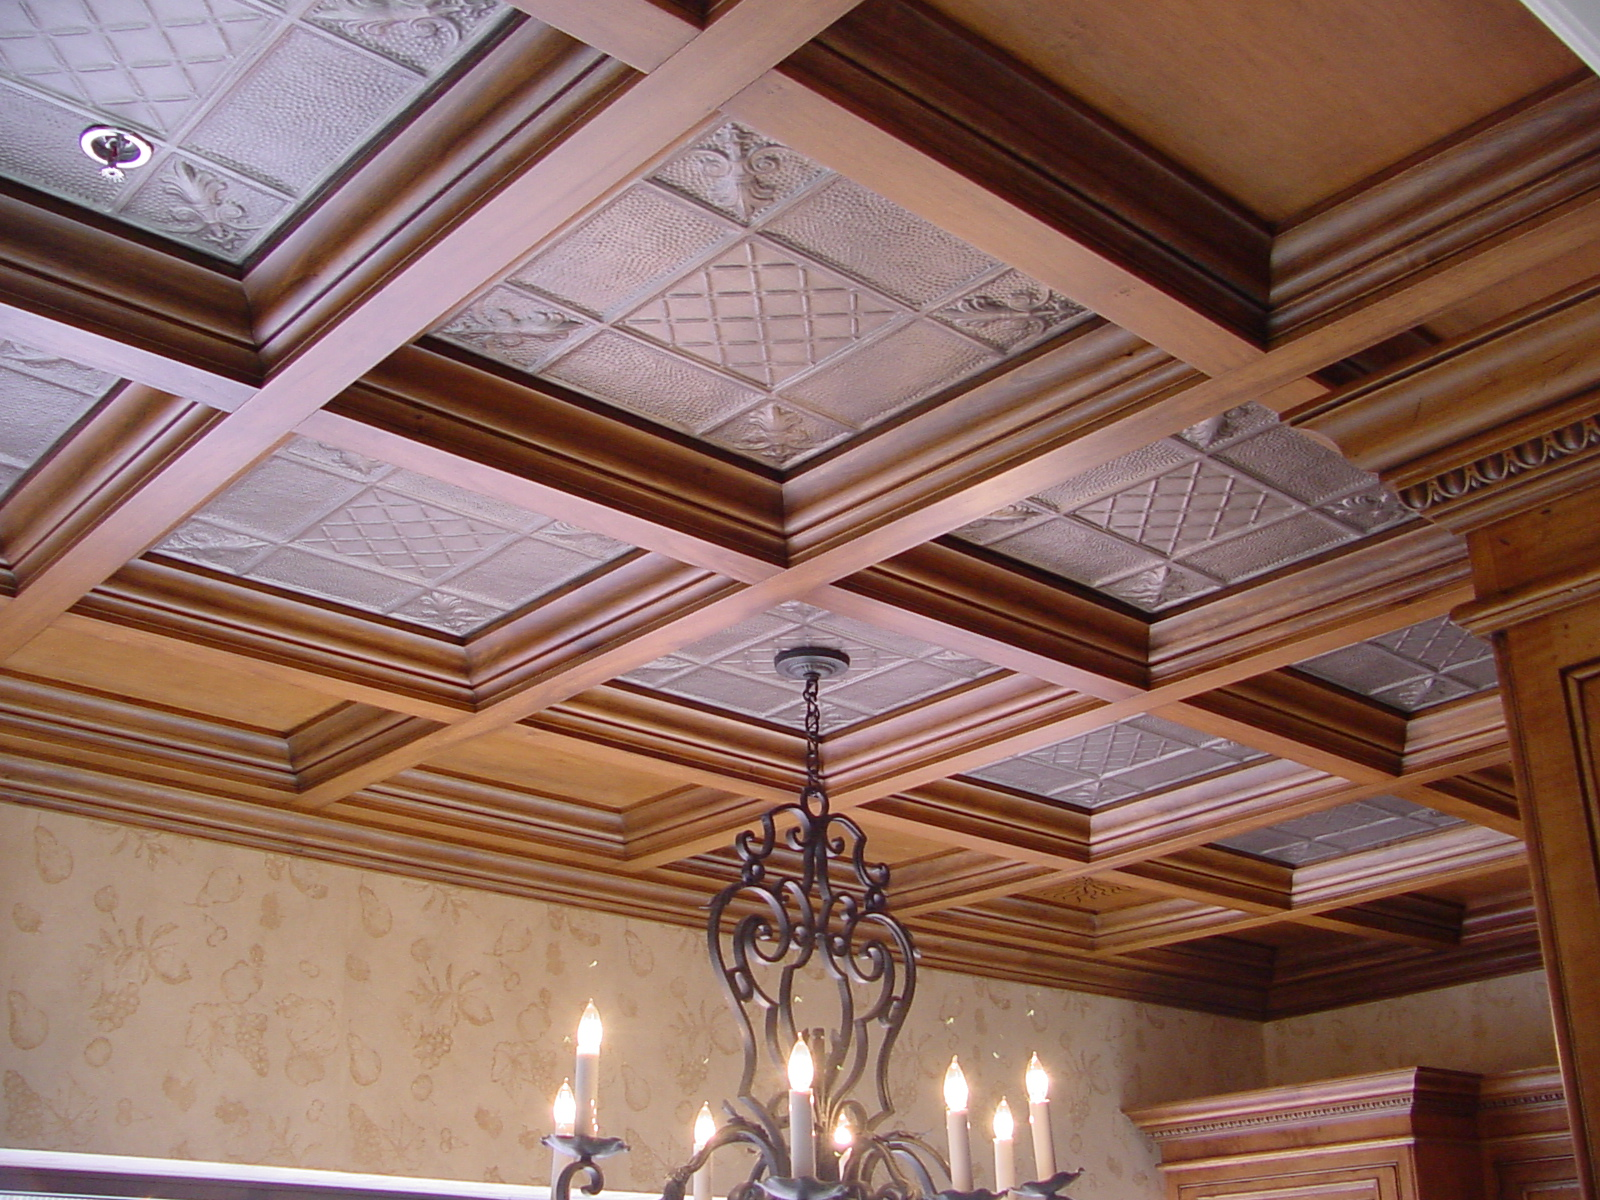 Ceiling stunning coffered ceiling for charming ceiling ideas wooden coffered ceilings with chandelier matched with cream wall looks elegant dailygadgetfo Choice Image